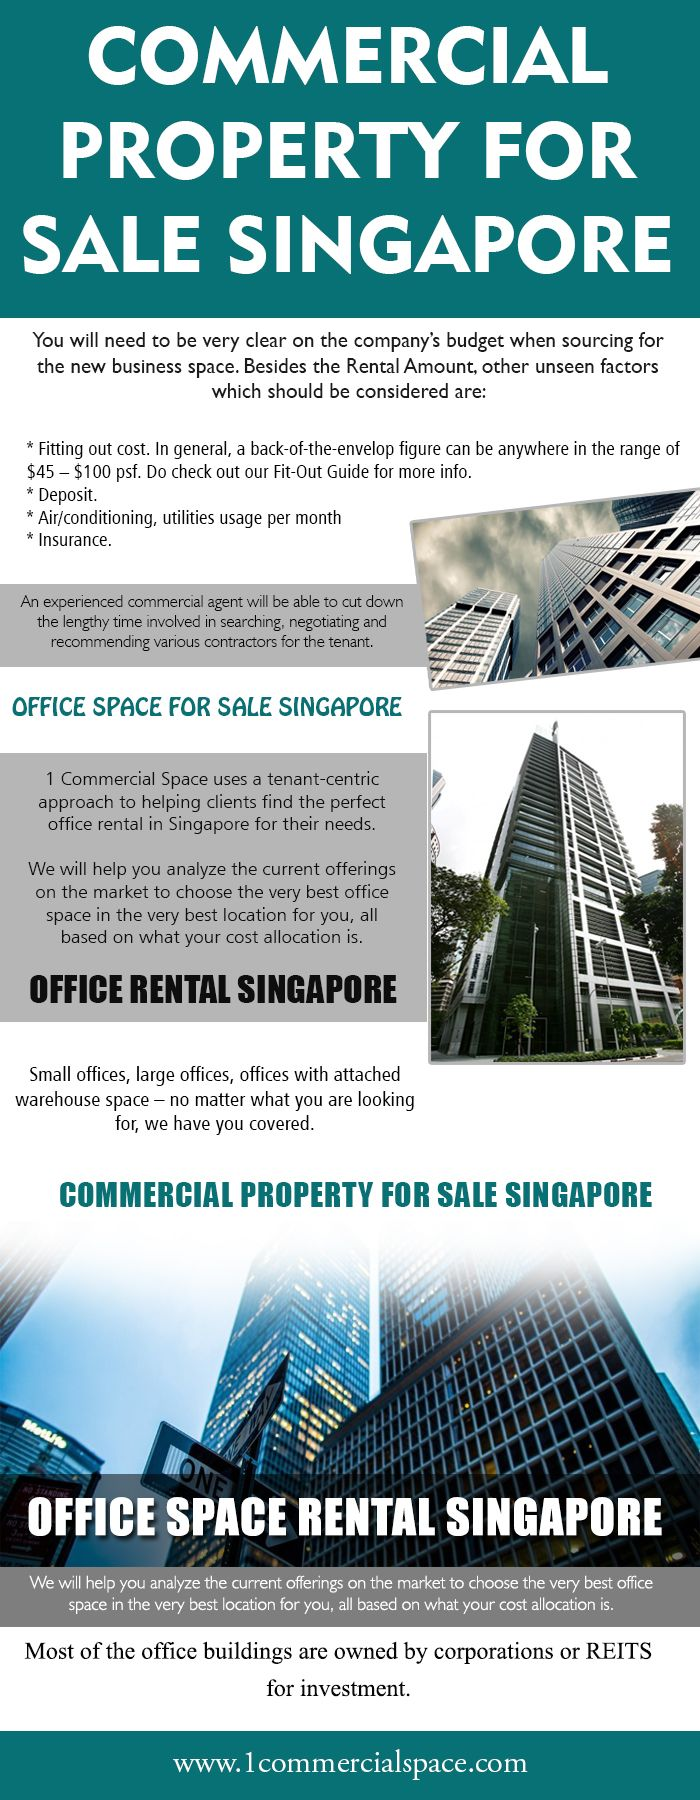 Our Website commercialspaceofficesforsale The